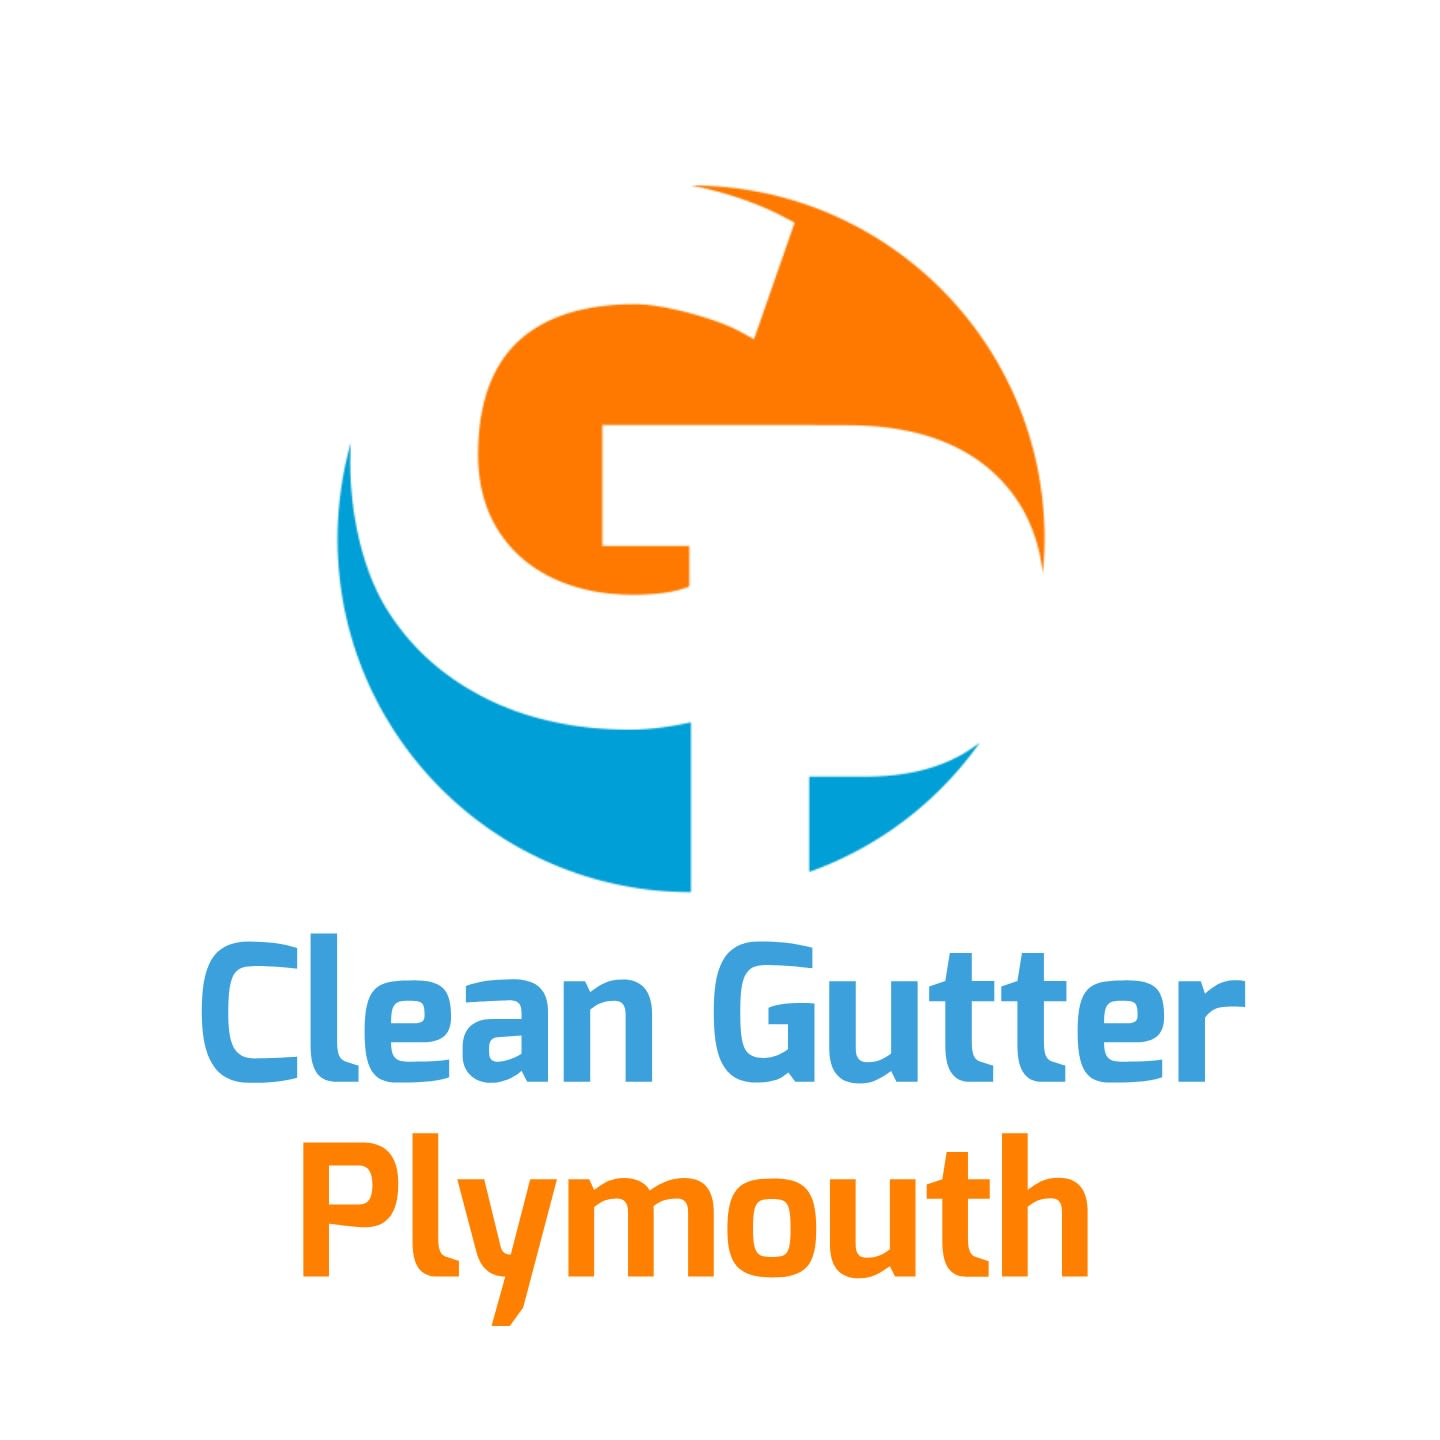 Clean Gutter Plymouth - Plymouth, Devon PL6 8DY - 08007 720816 | ShowMeLocal.com